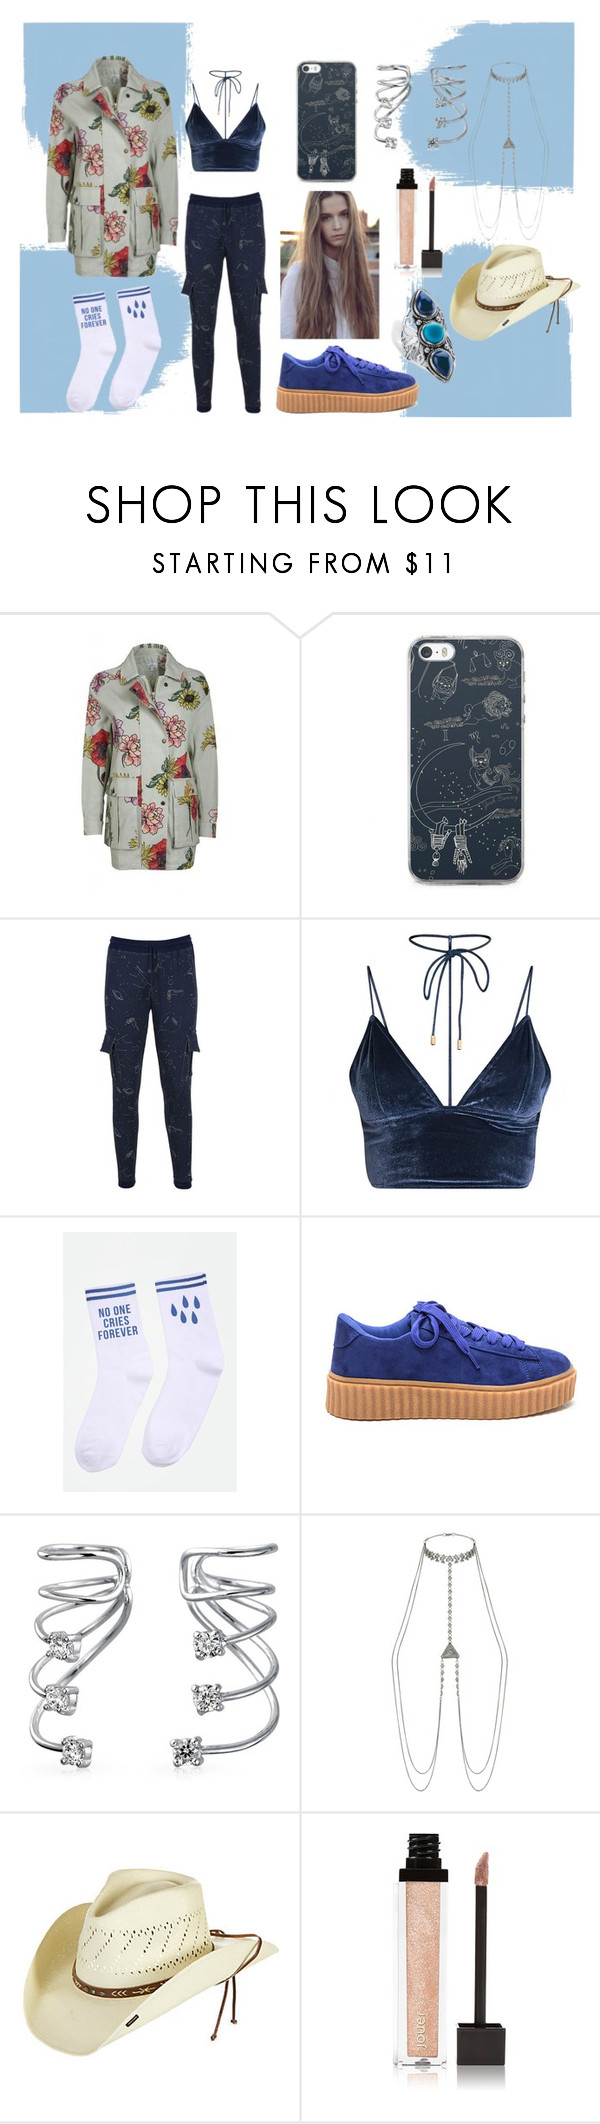 """""""Country Pop."""" by mandax17 ❤ liked on Polyvore featuring Bling Jewelry, Accessorize, Stetson, Jouer, Palm Beach Jewelry and country"""